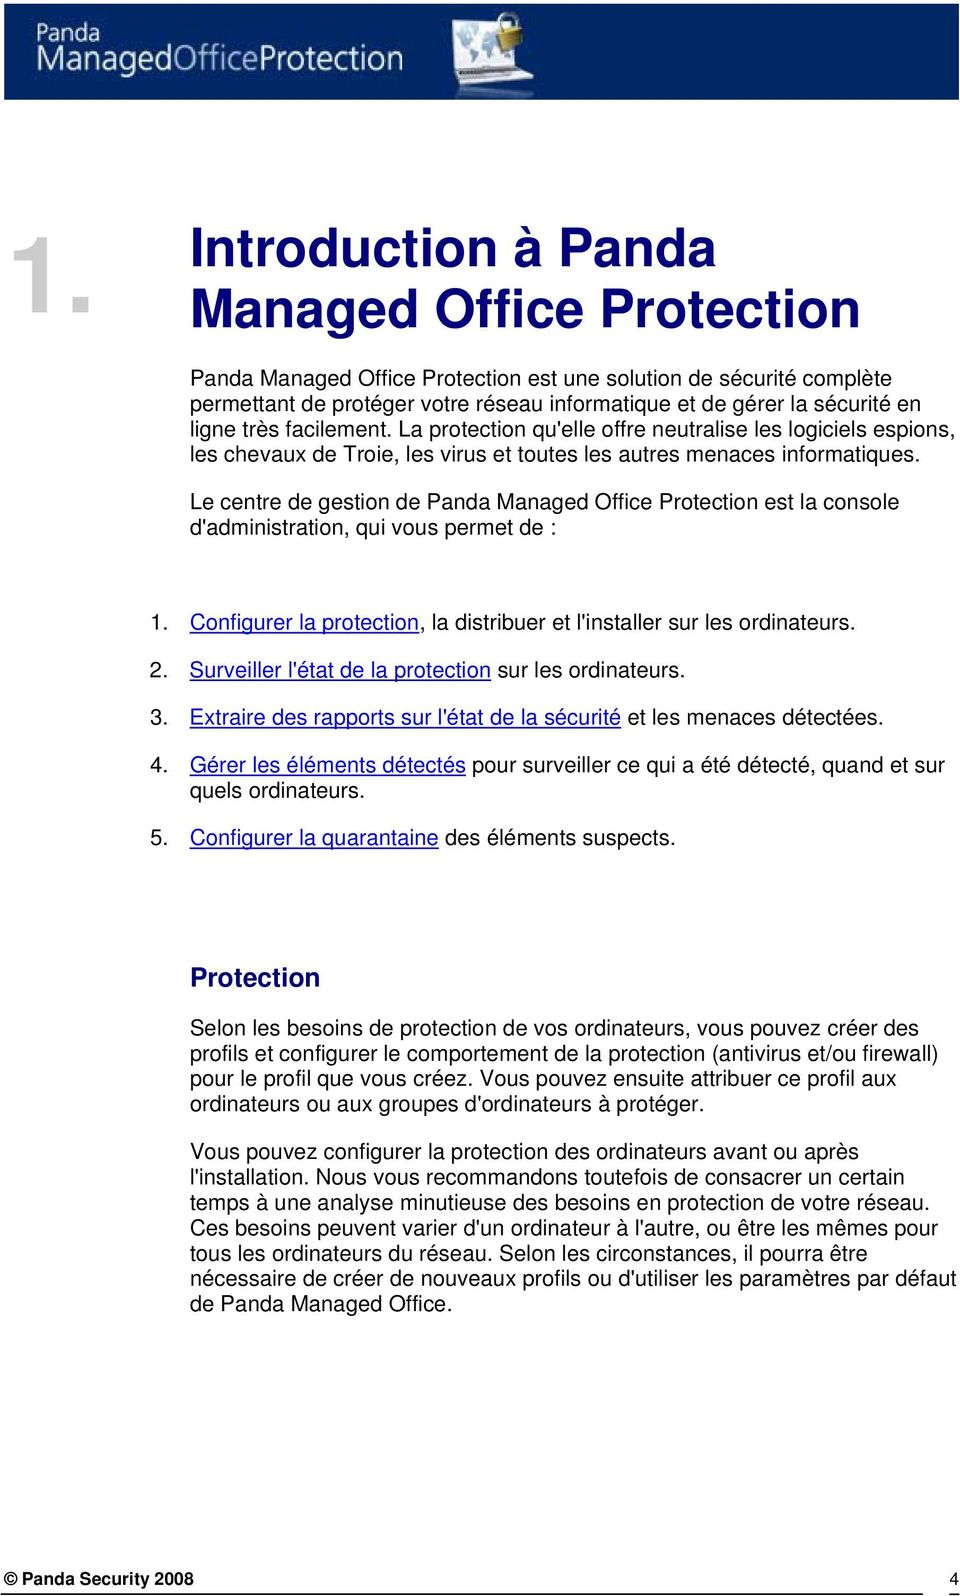 Le centre de gestion de Panda Managed Office Protection est la console d'administration, qui vous permet de : 1. Configurer la protection, la distribuer et l'installer sur les ordinateurs. 2.